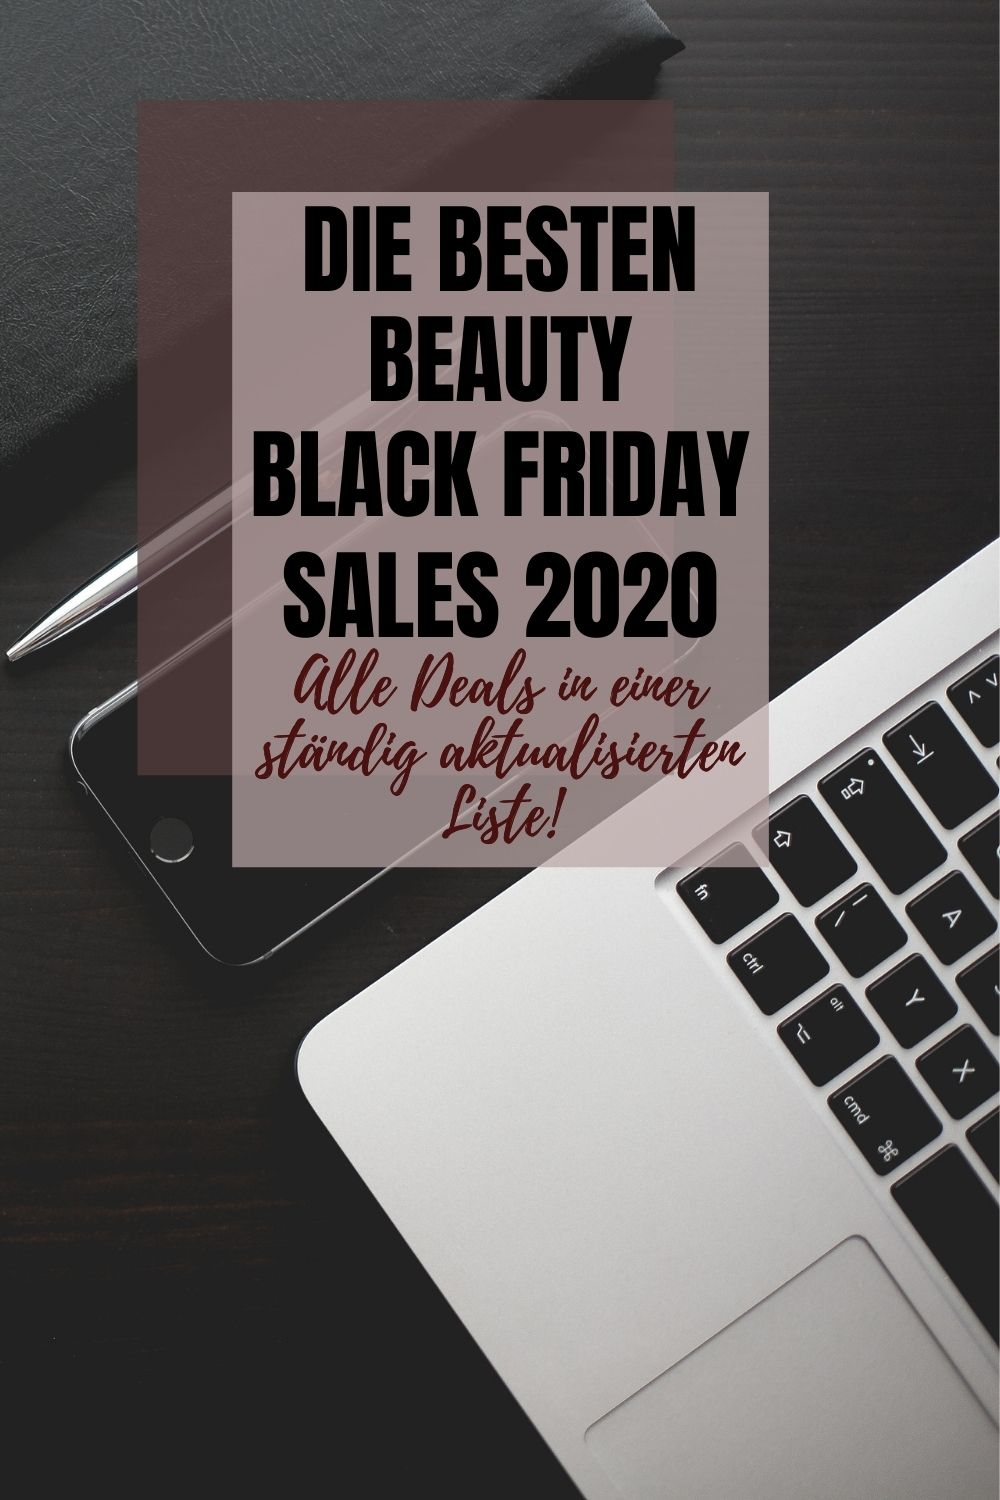 Die besten Beauty Black Friday Sales 2020